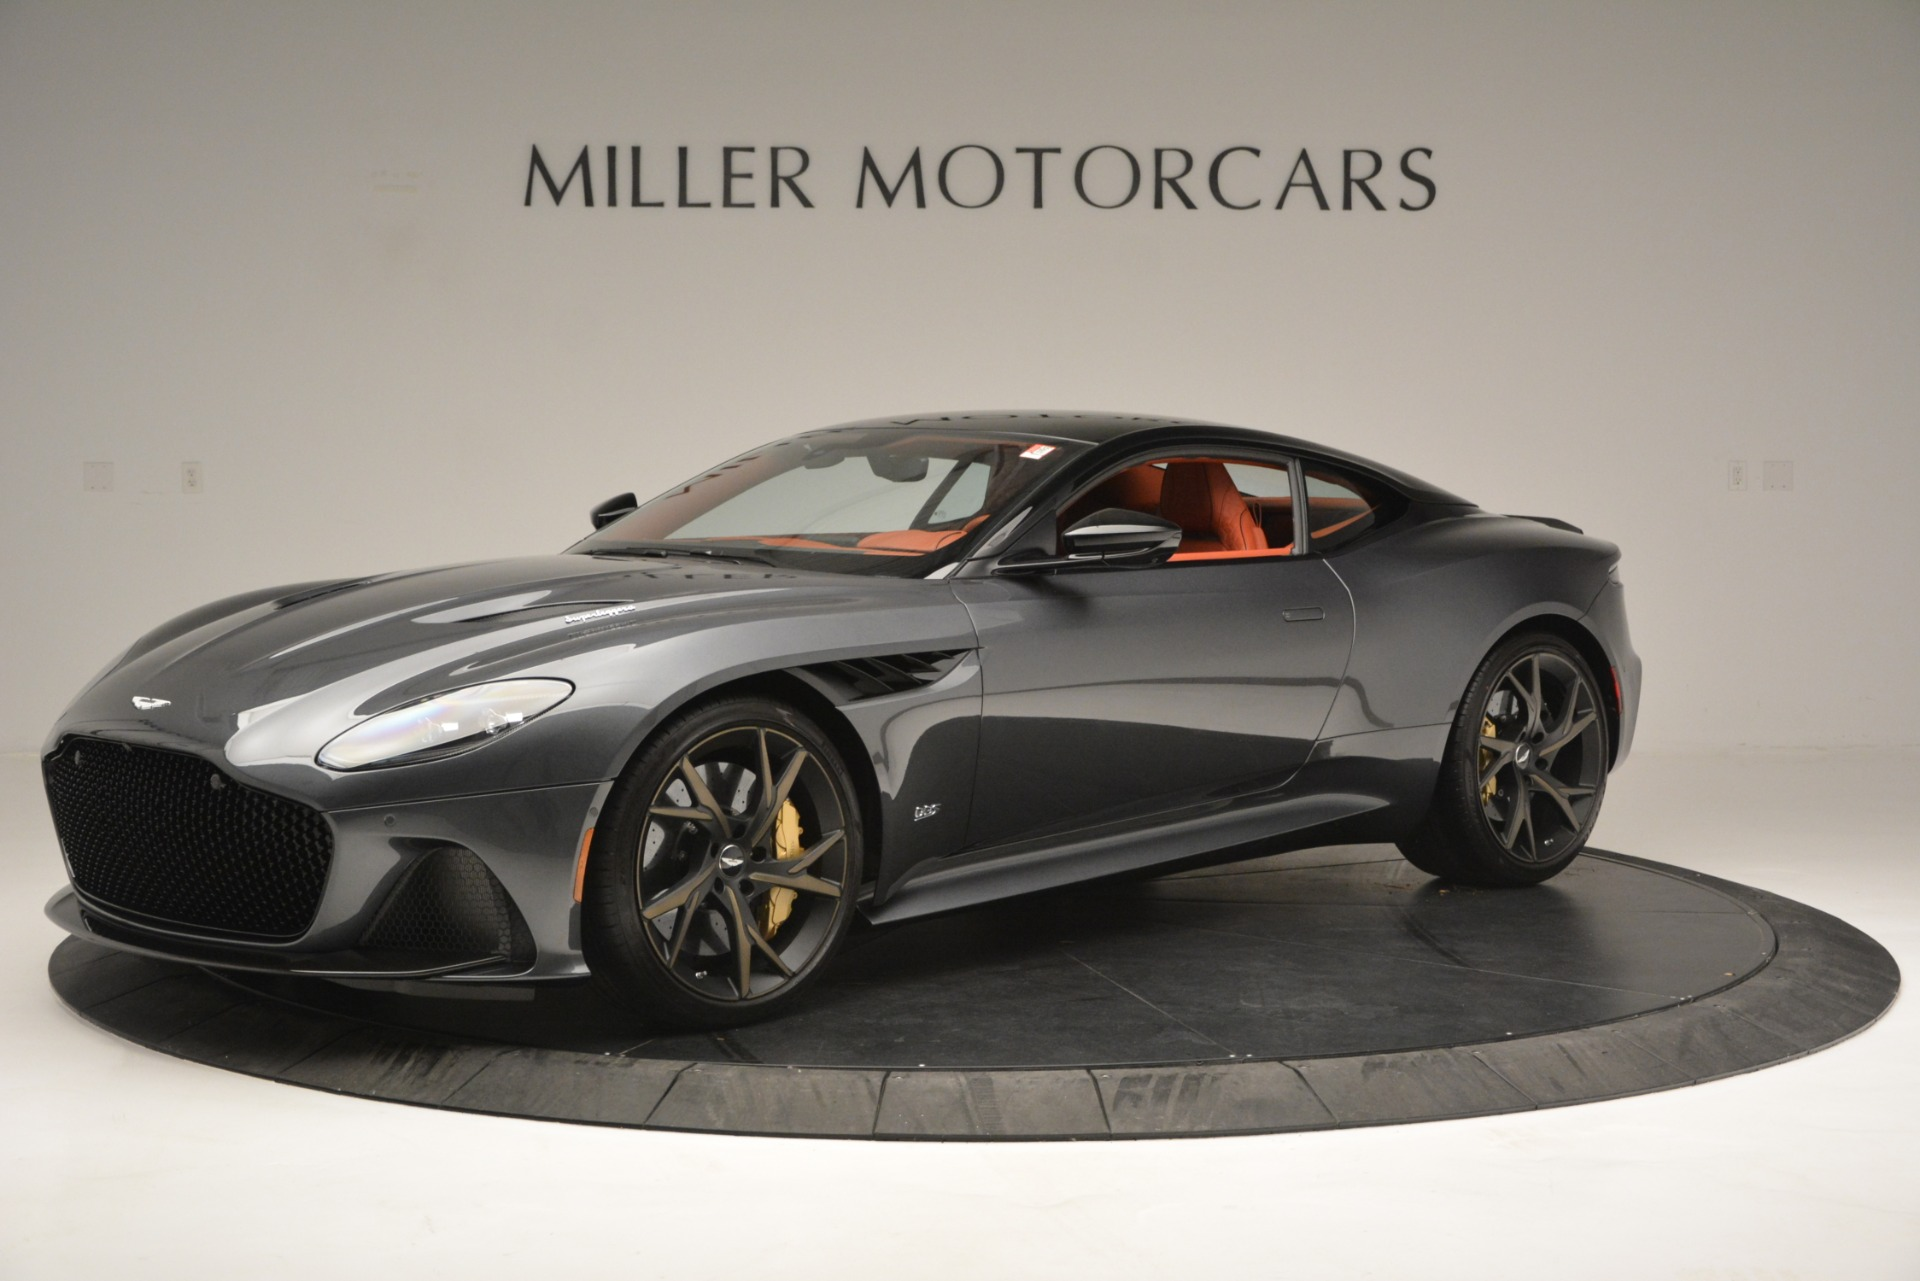 Used 2019 Aston Martin DBS Superleggera Coupe for sale $265,900 at McLaren Greenwich in Greenwich CT 06830 1